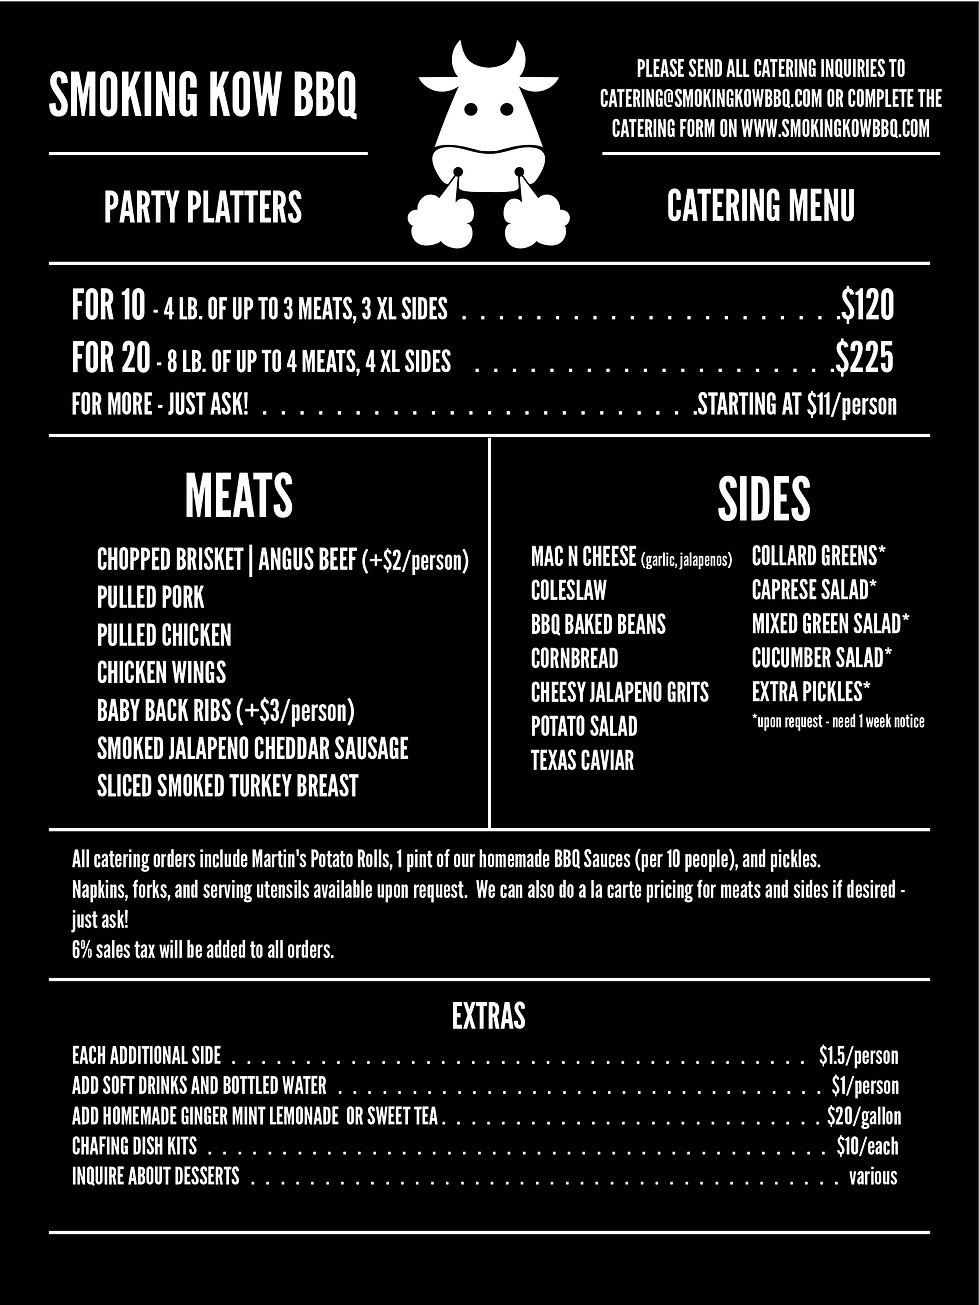 Catering menu 2-7-20.png